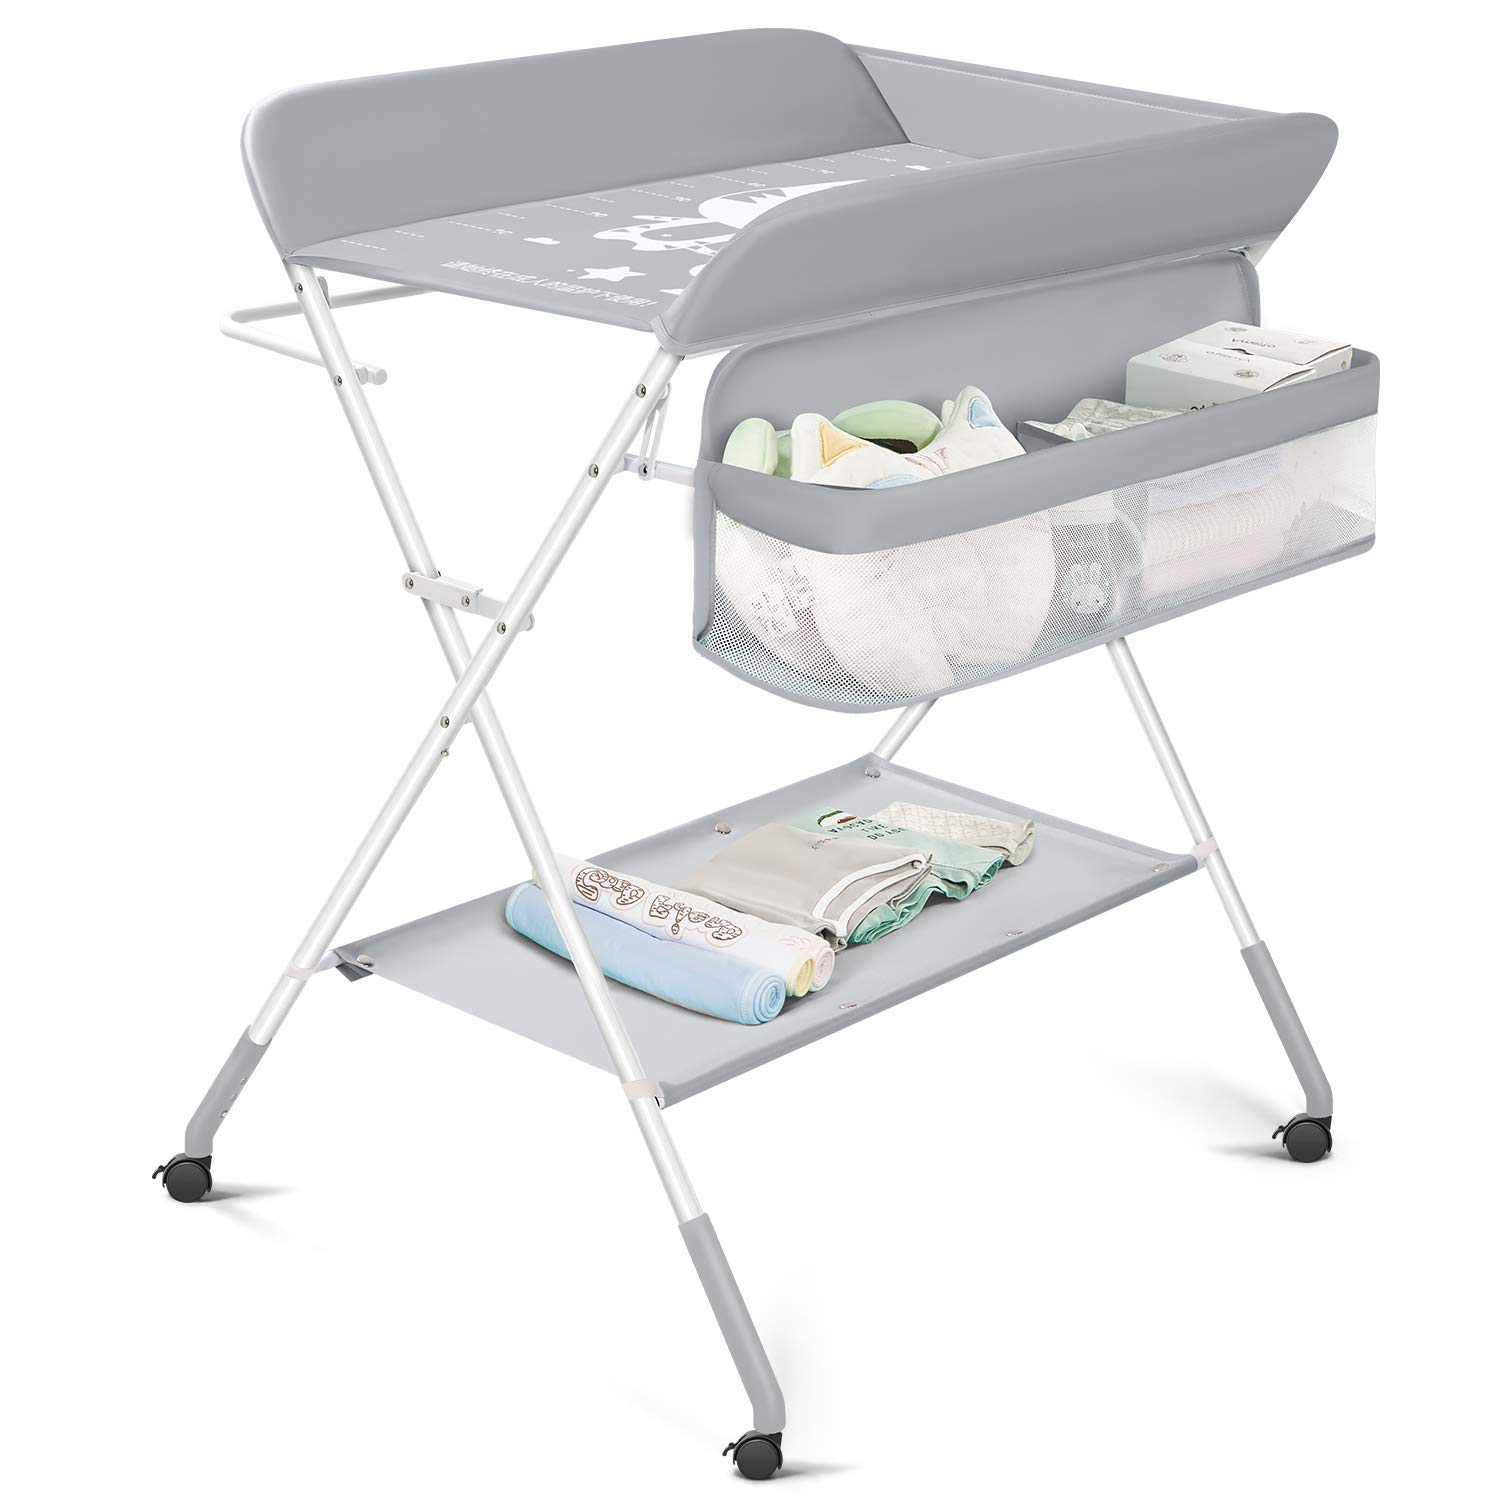 Lucky Link Infant Changing Table Folding with Wheels, Safety Strap, Storages Baskets, Baby Diaper Station Nursery Organizer, Light Grey